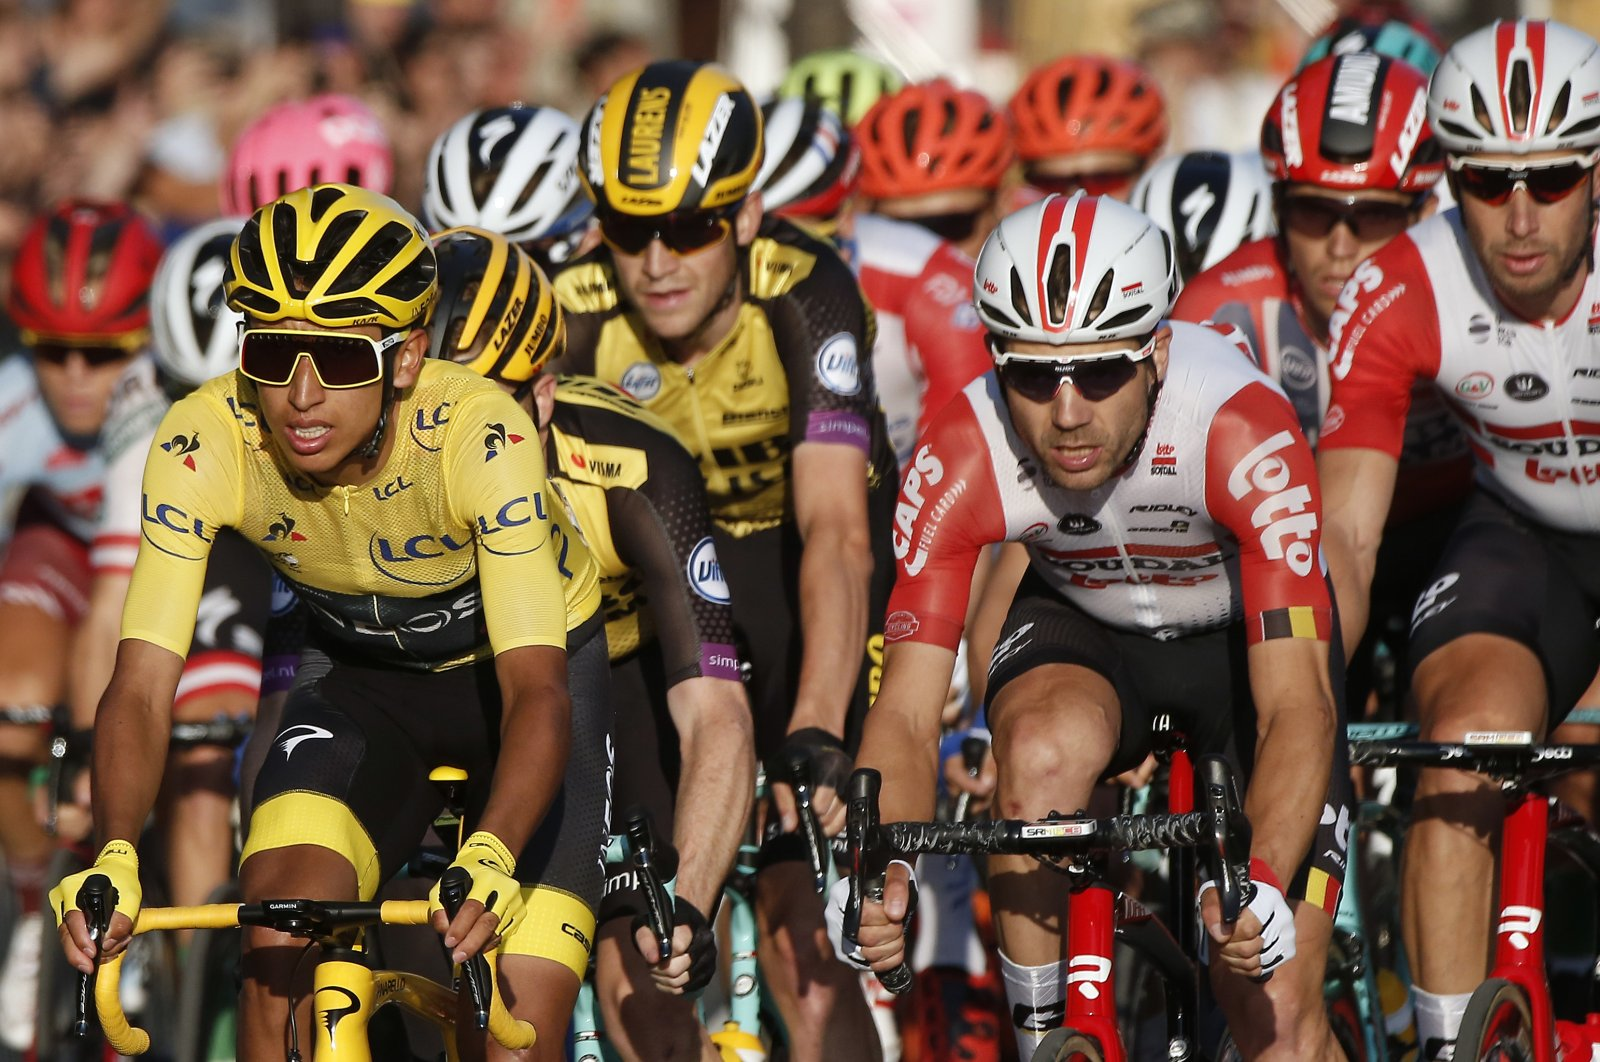 Egan Bernal (L) wearing the overall leader's yellow jersey, races on the Champs Elysees during the Tour de France cycling race in Paris, France, July 28, 2019. (AP Photo)